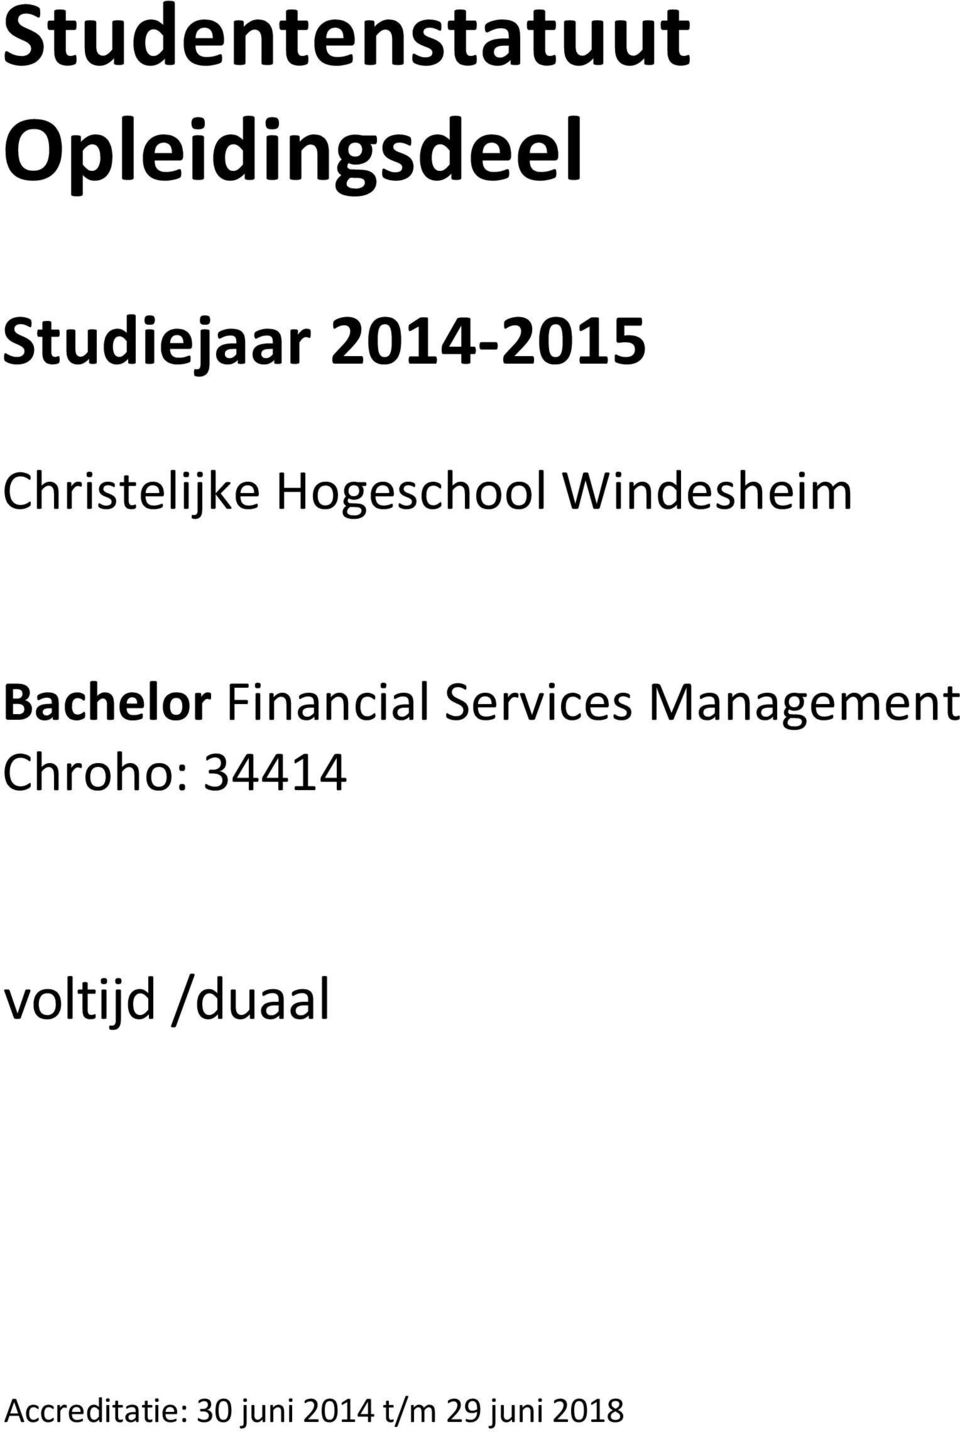 Bachelor Financial Services Management Chroho: